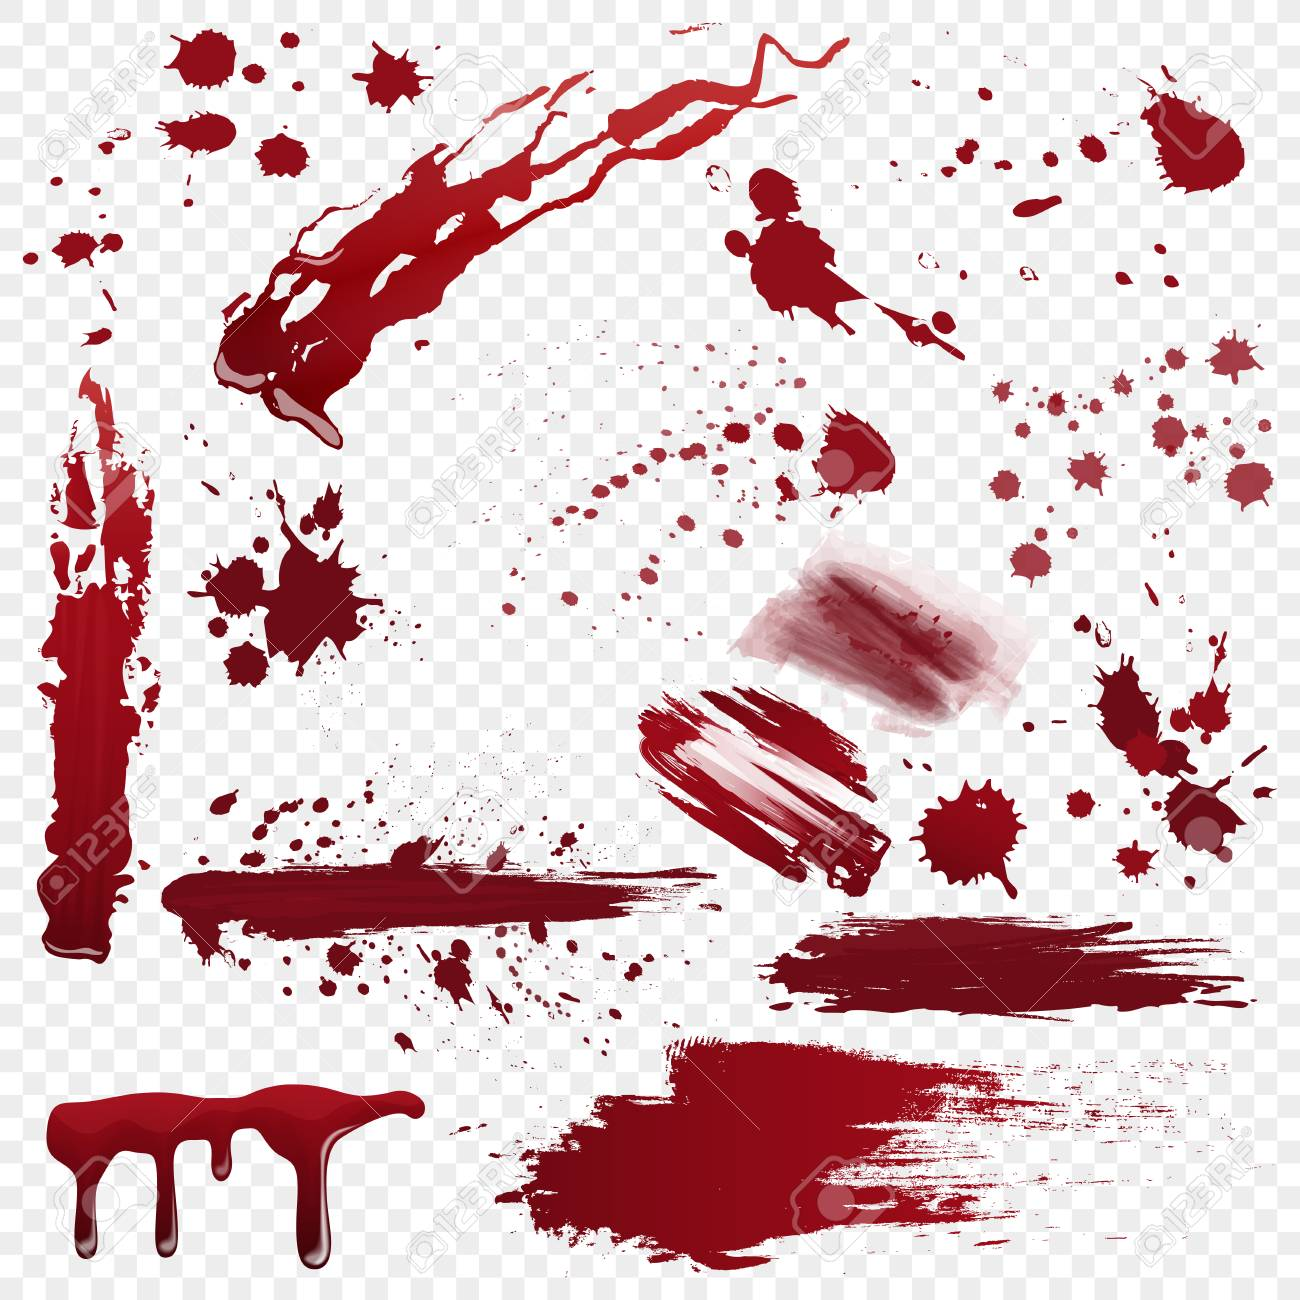 Set of vector various realistic detailed bloodstain, blood or paint splatters isolated on the alpha transperant background. - 105172385